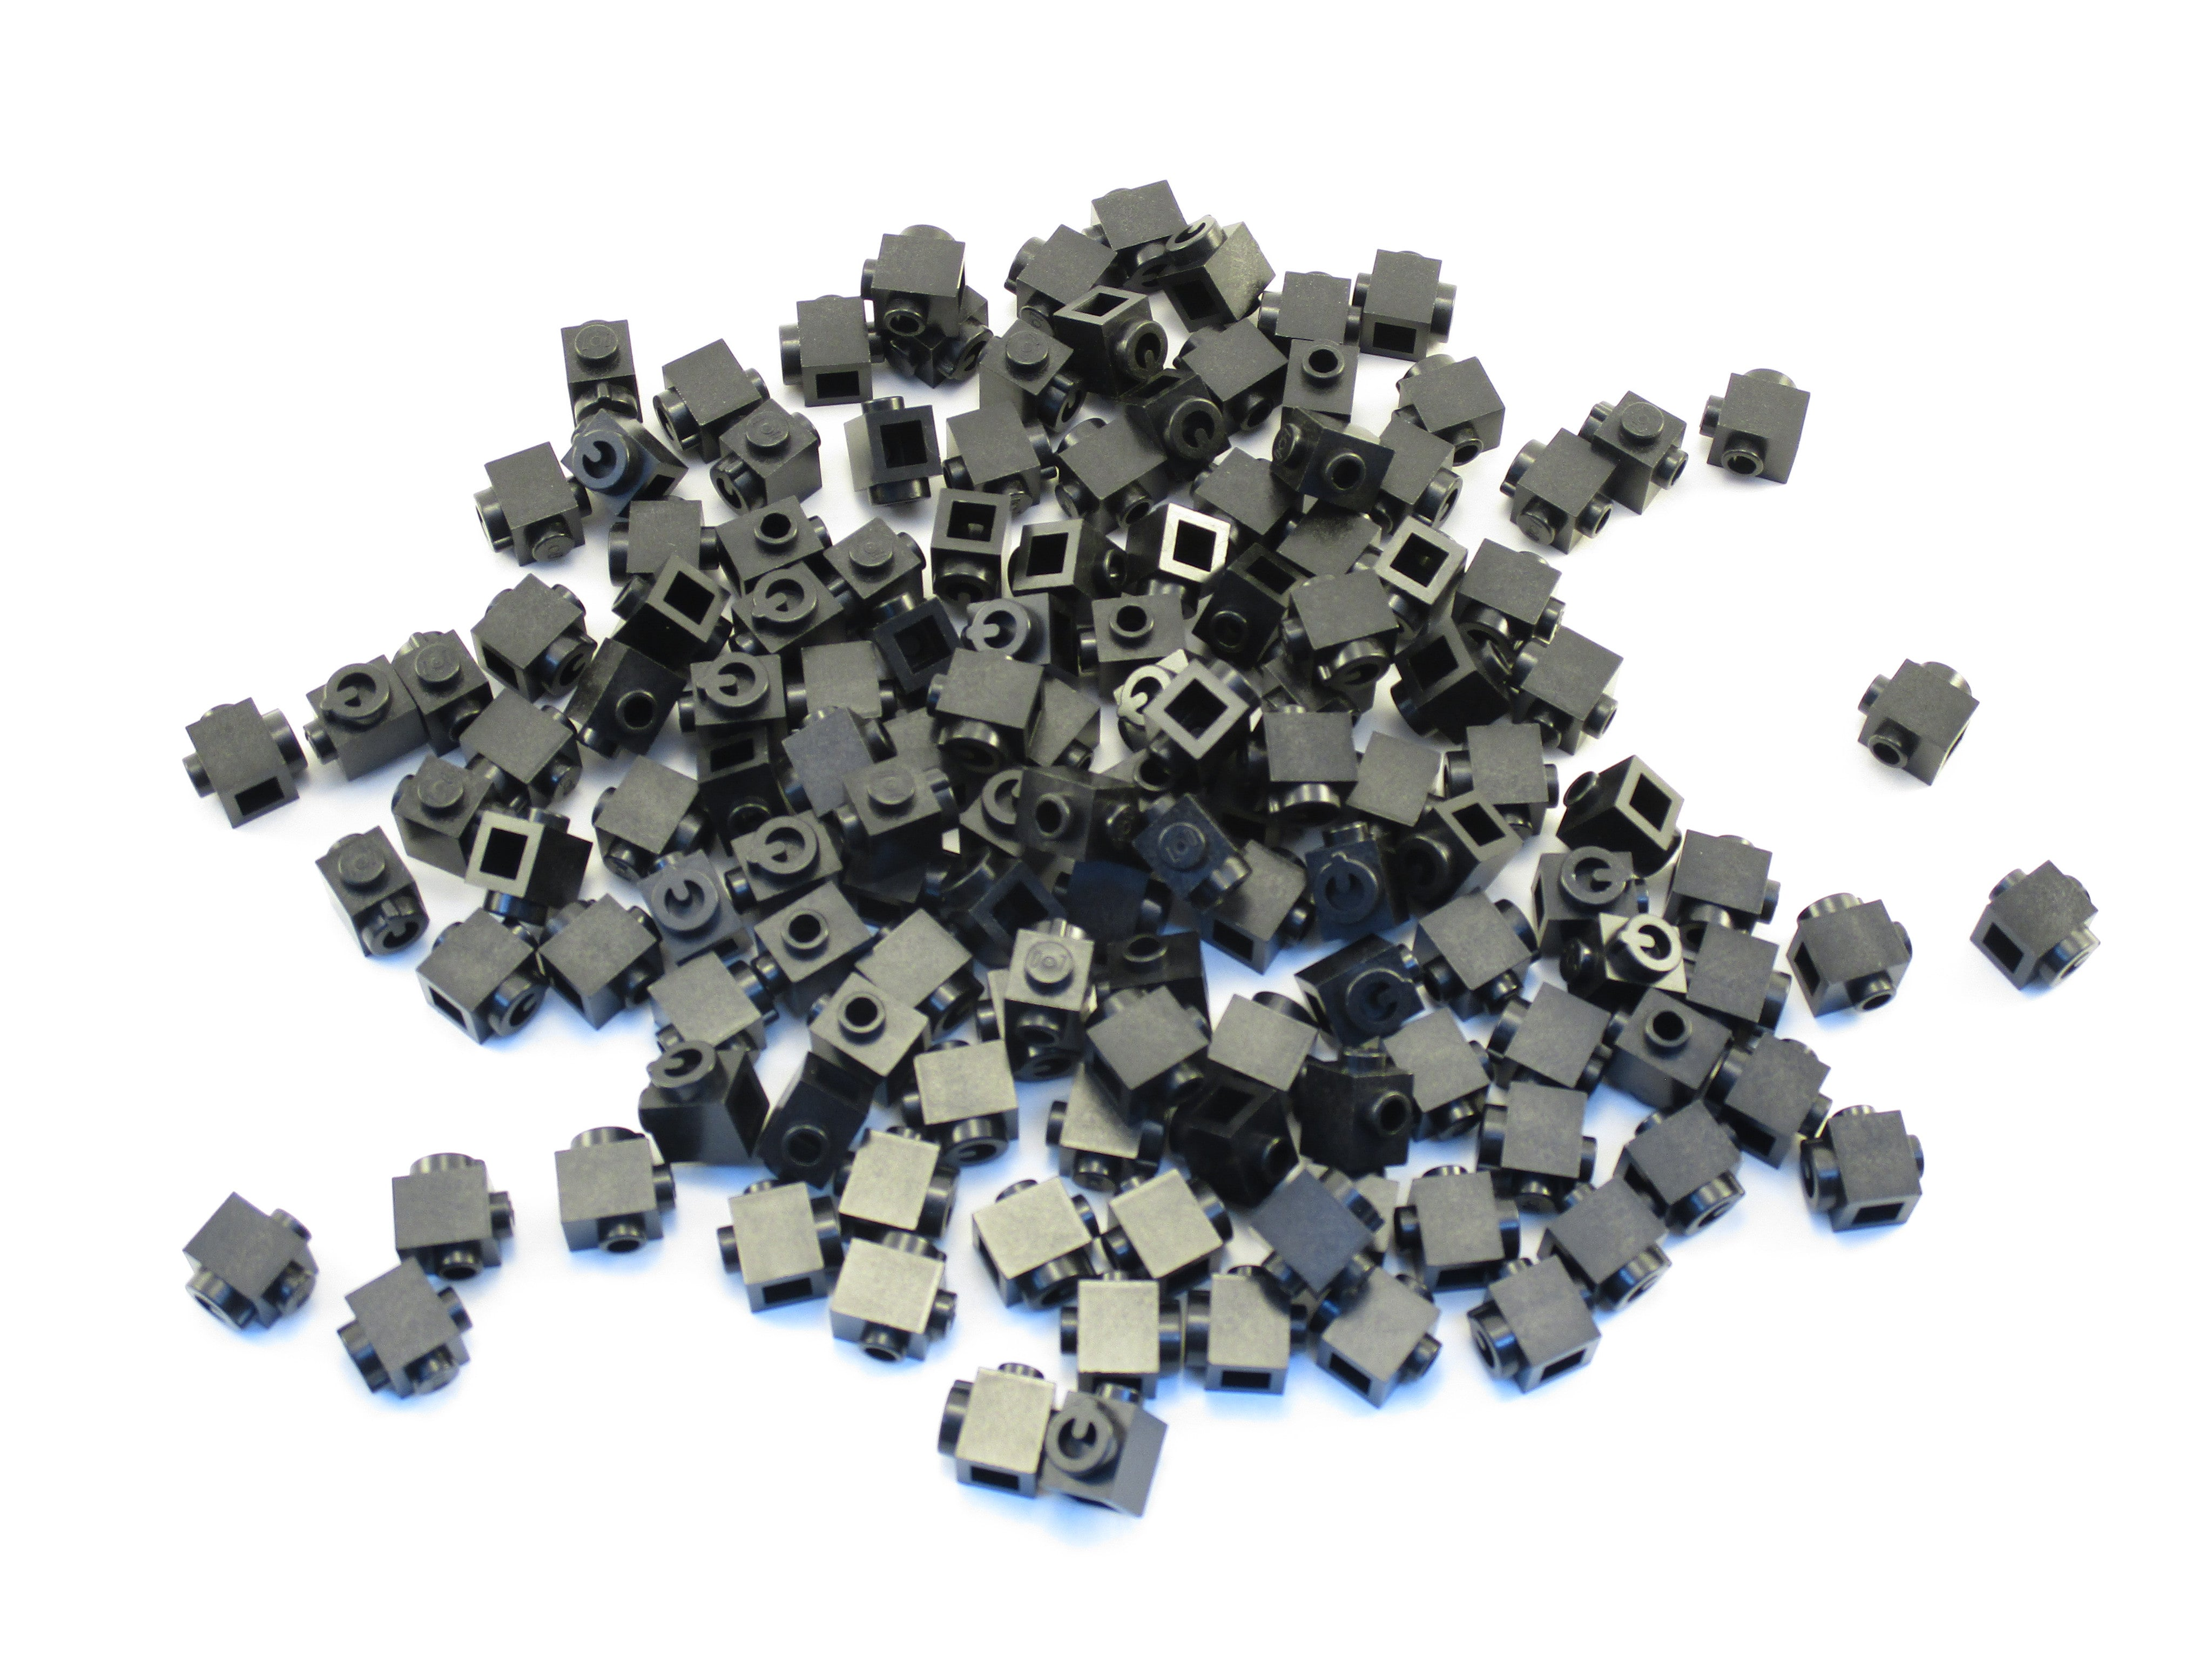 LEGO Black Brick Modified 1x1 Stud on Side Conductive Element AppBrick Lot of 50 Parts Pieces 15411